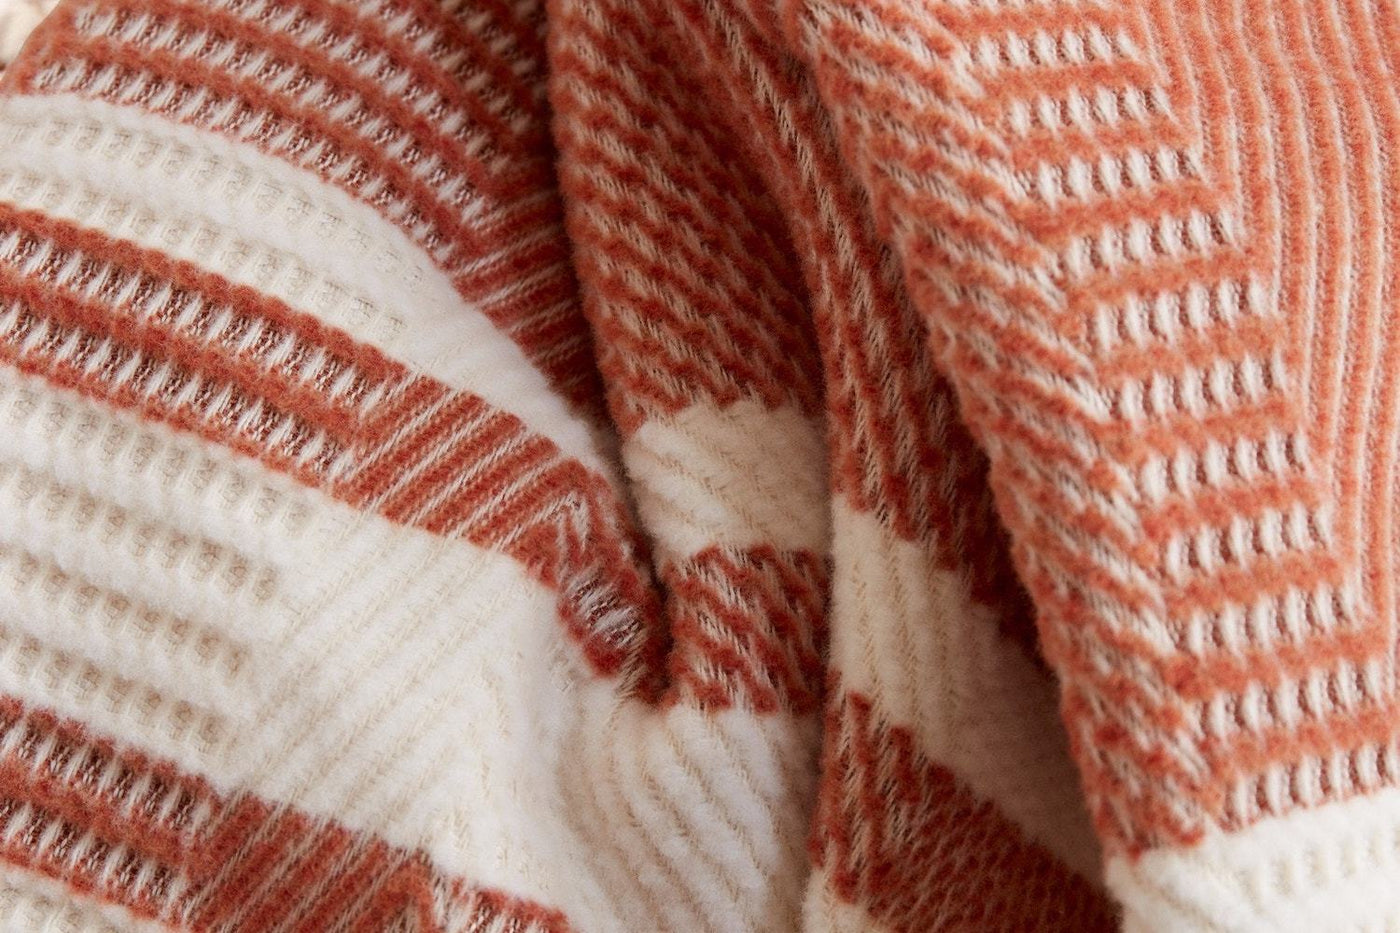 Organic Blankets and Throws Collection from Resthouse - Luxurious Organic Blankets and Throws